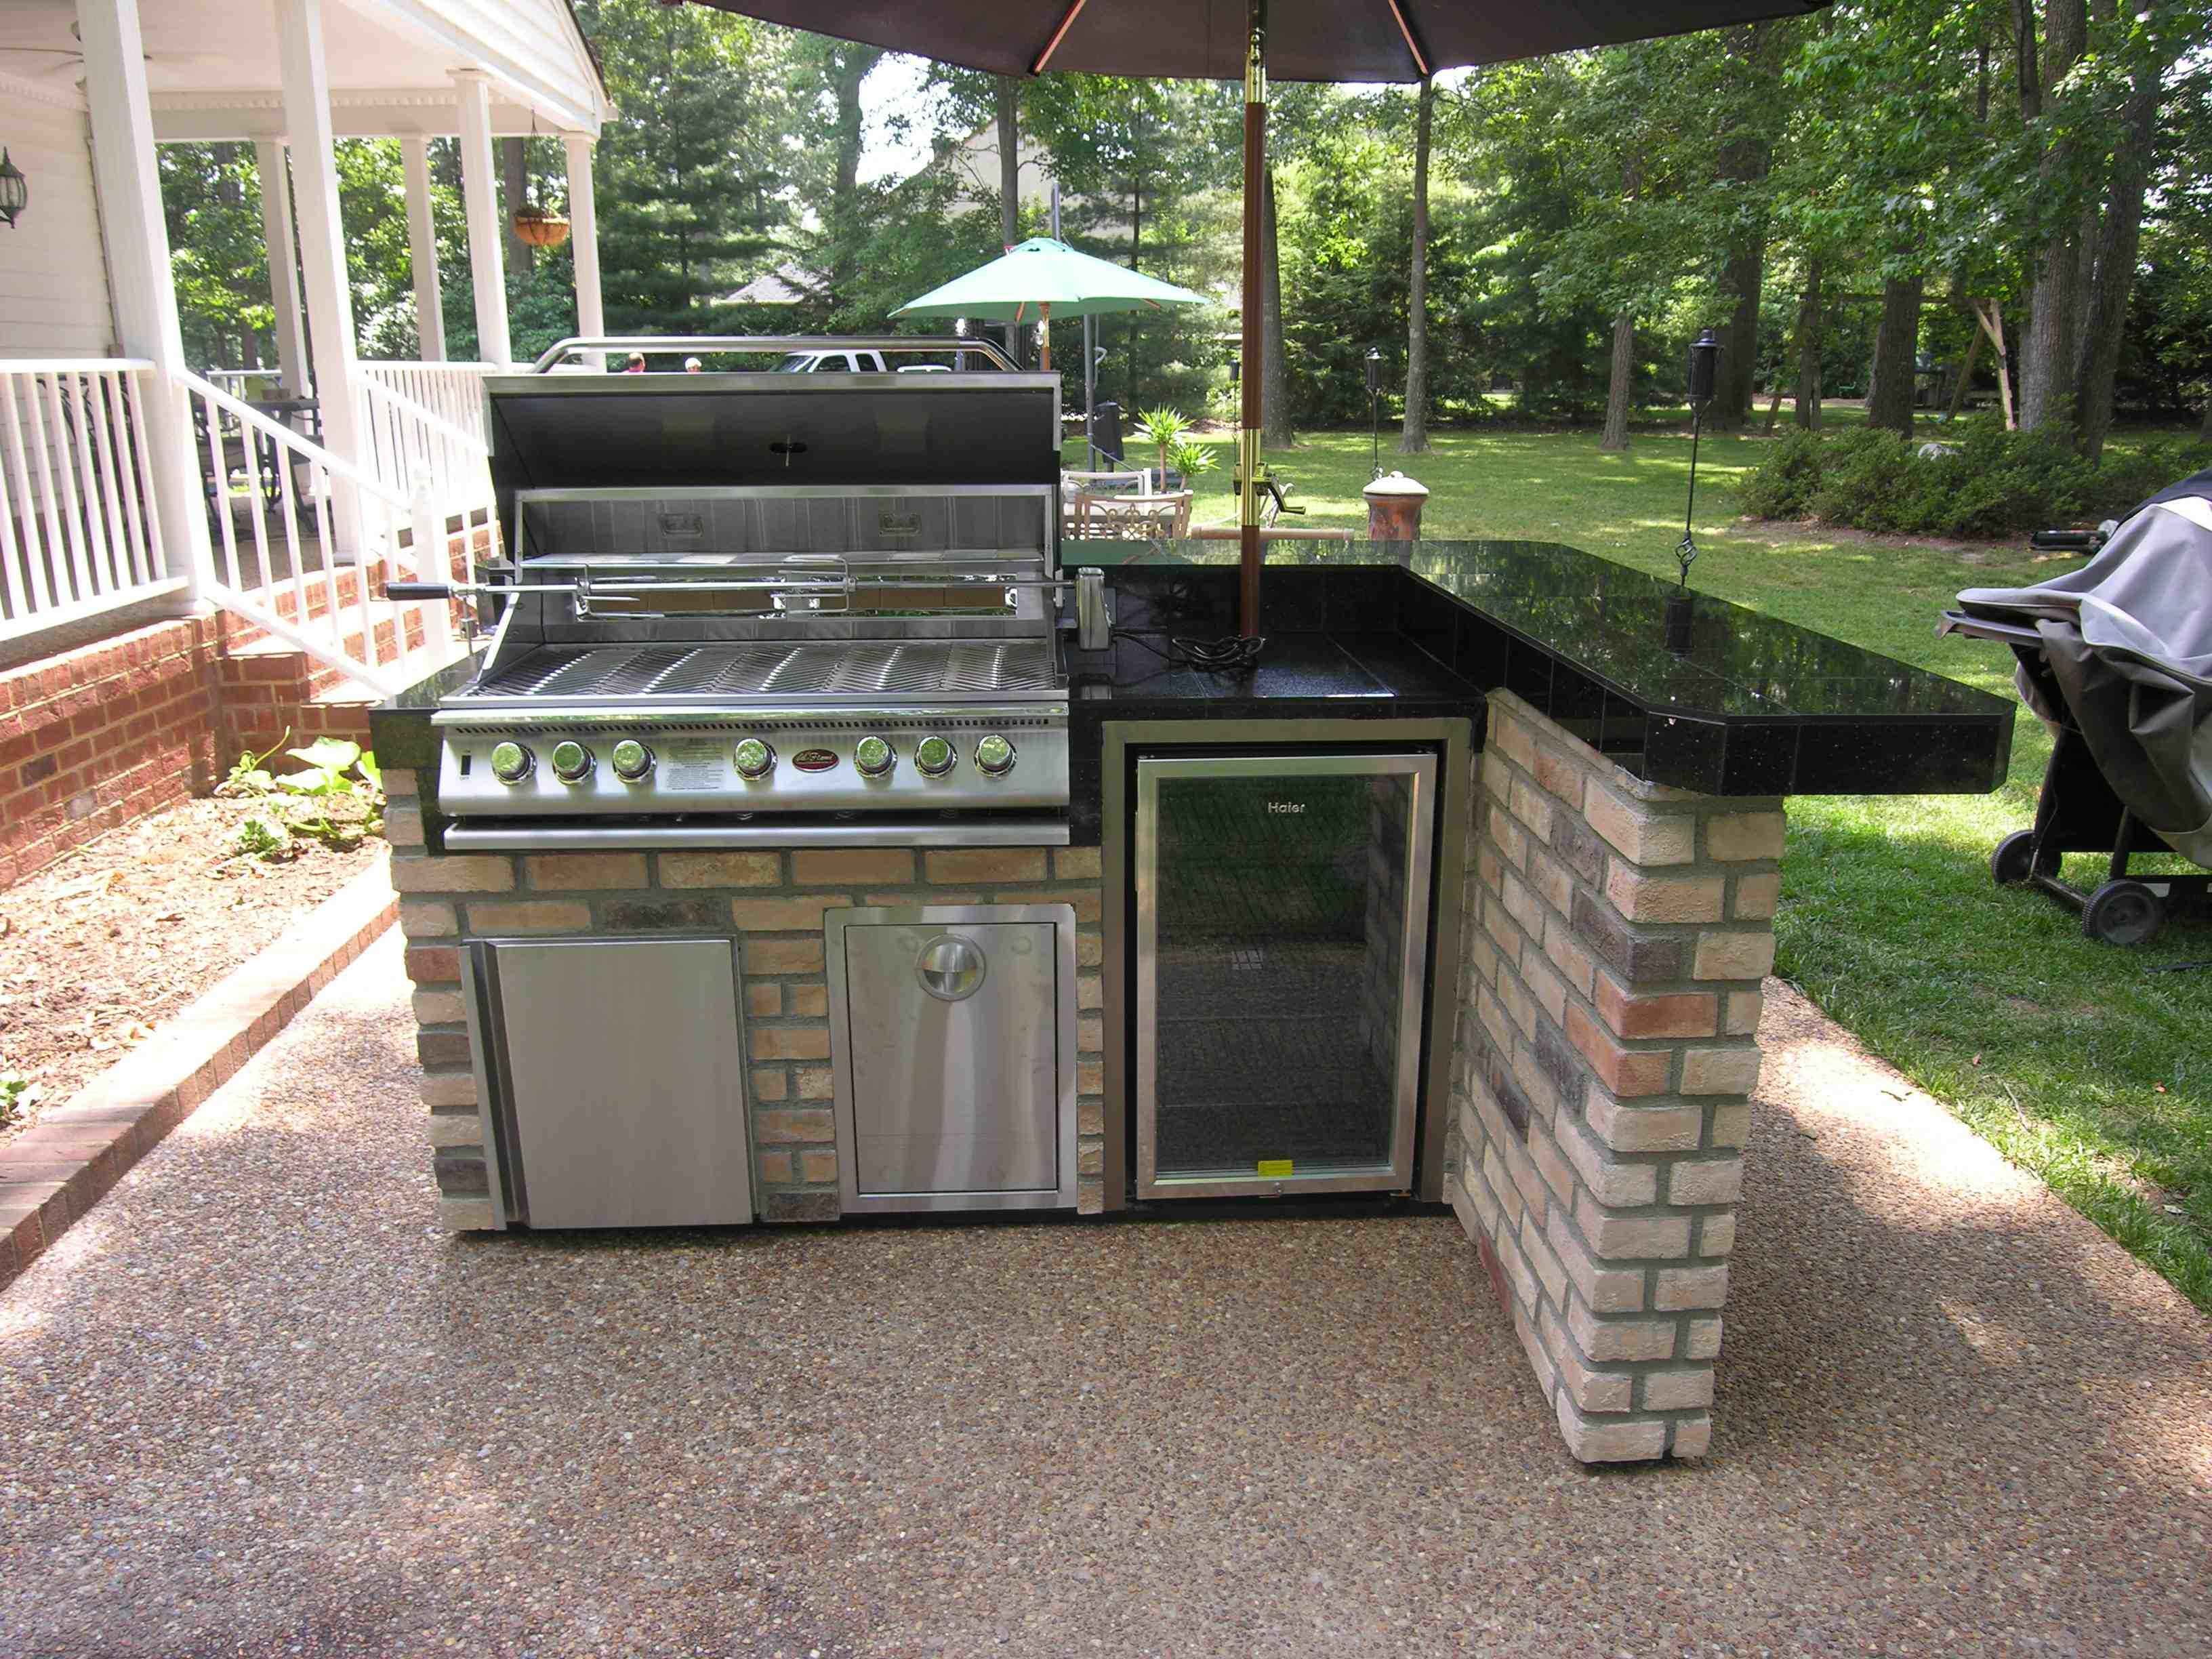 simple-small-outdoor-kitchen-ideas-designs-also-black-tile-countertop-plus-stainless-steel-gas-grill-with-green-garden-idea